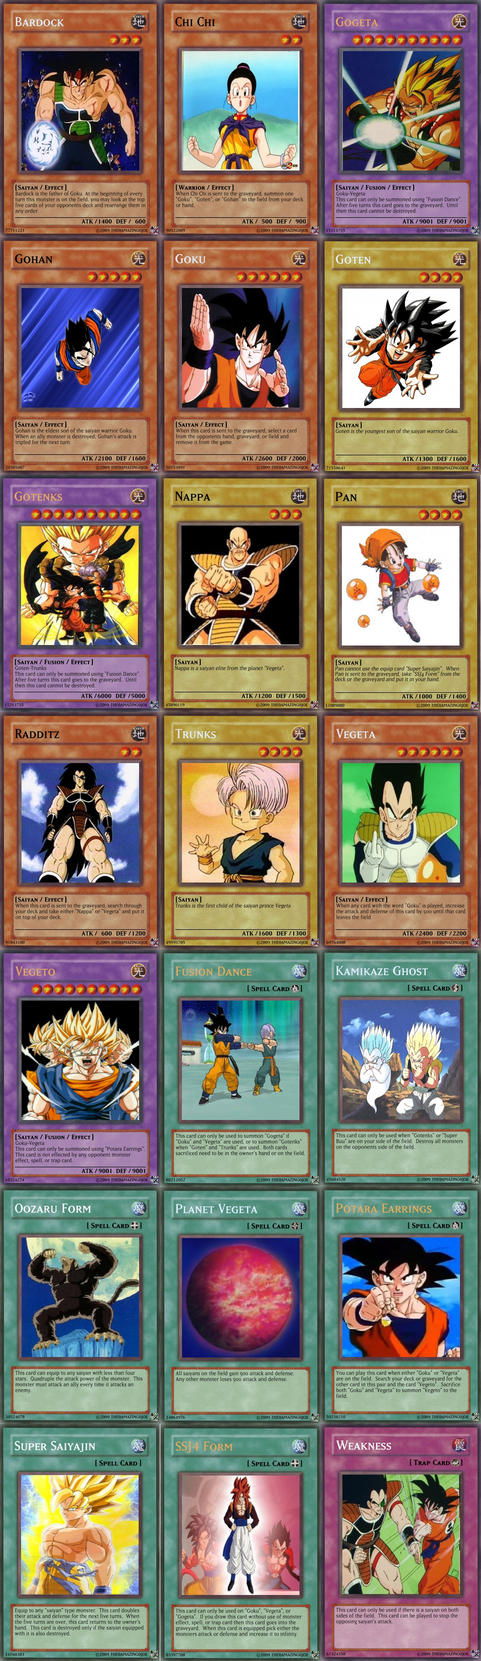 Yugioh Cards?? DBZ?? WHAT?? by TemBrook